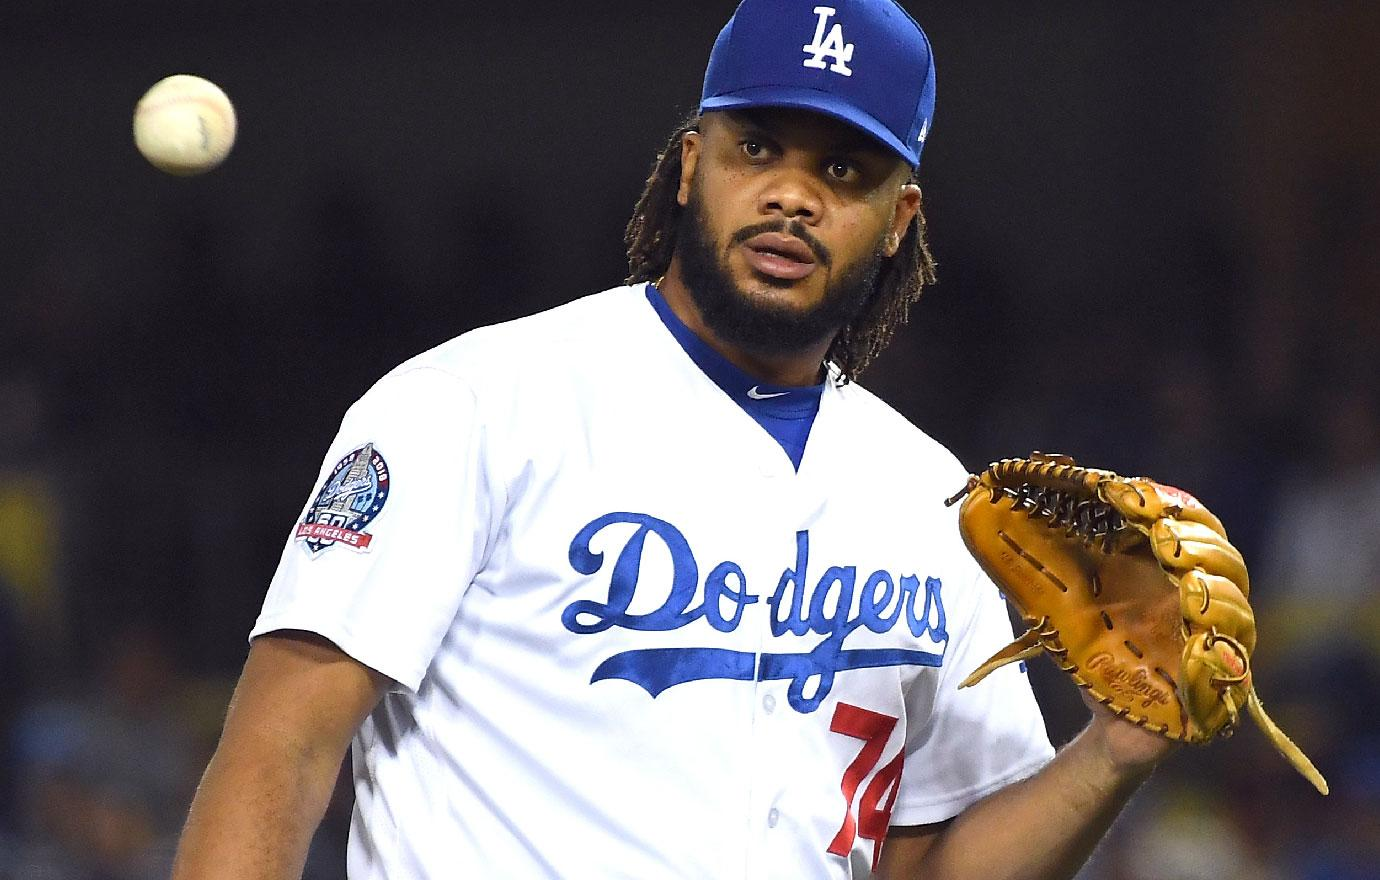 Dodgers Pitcher Kenley Jansen Legal Battle With Baby Mama Over Child's Health